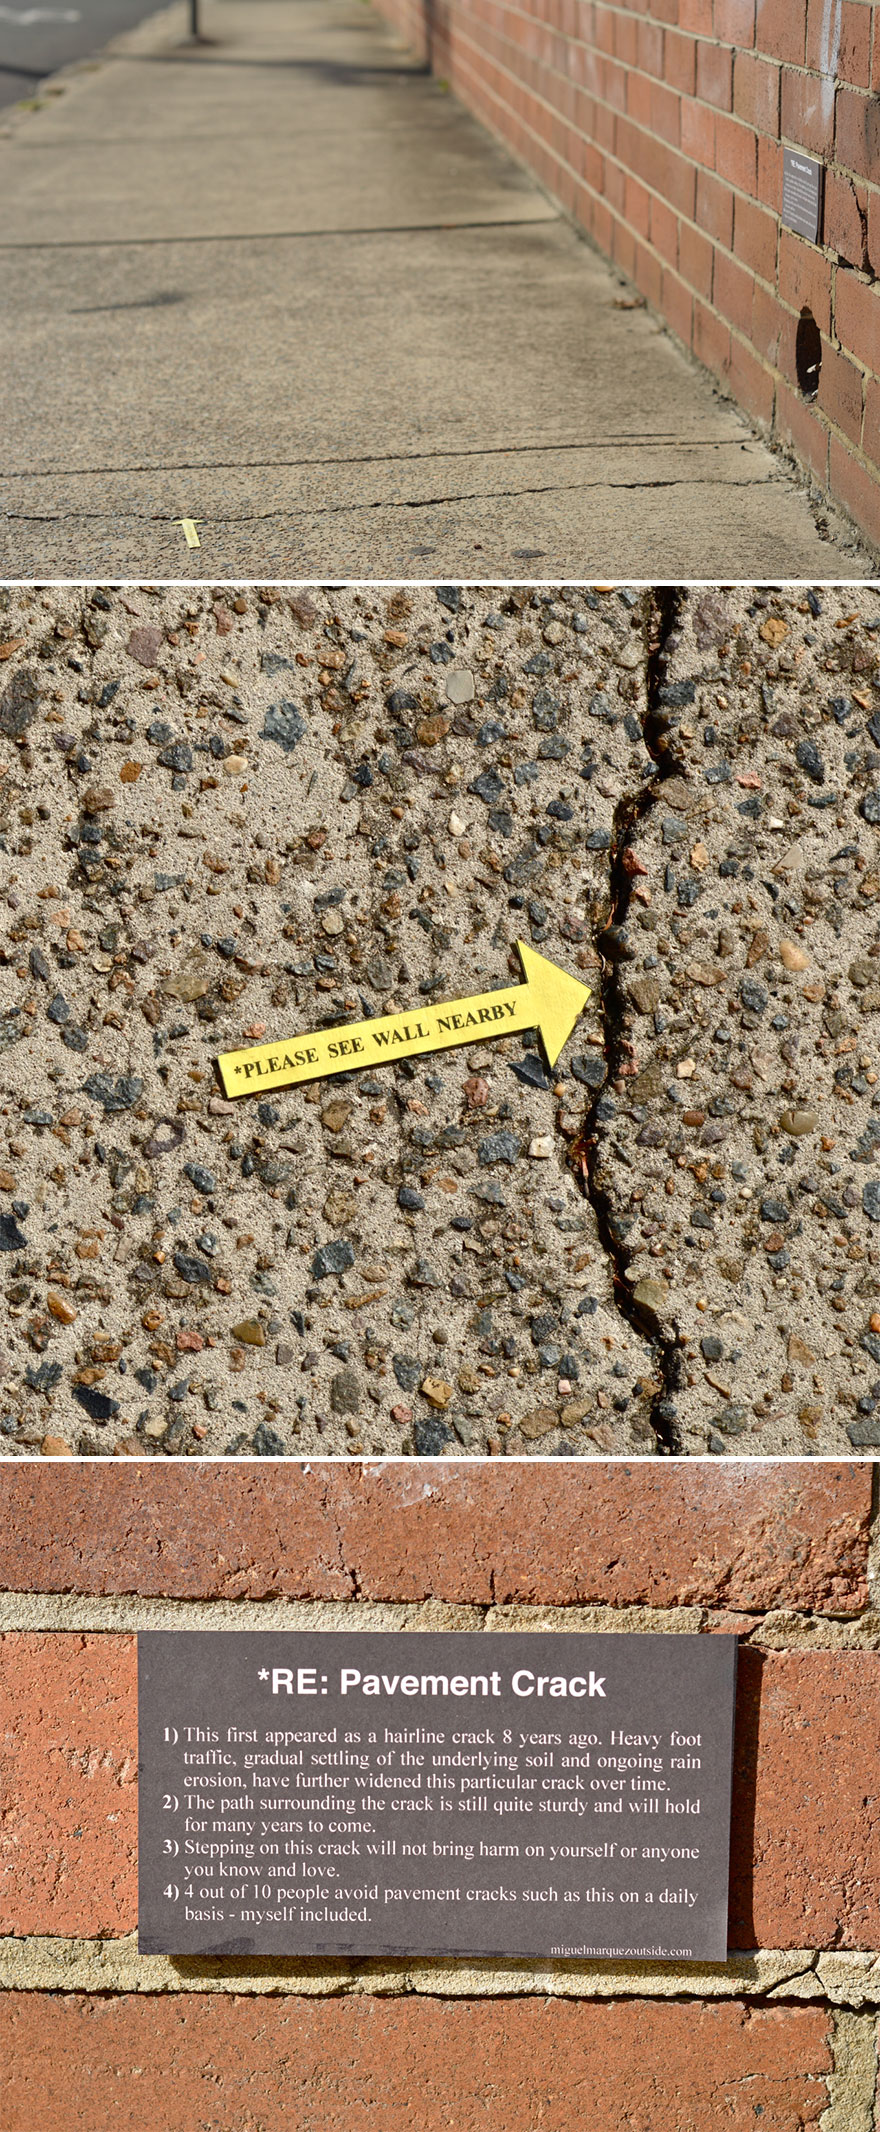 A History Of Pavement Cracks